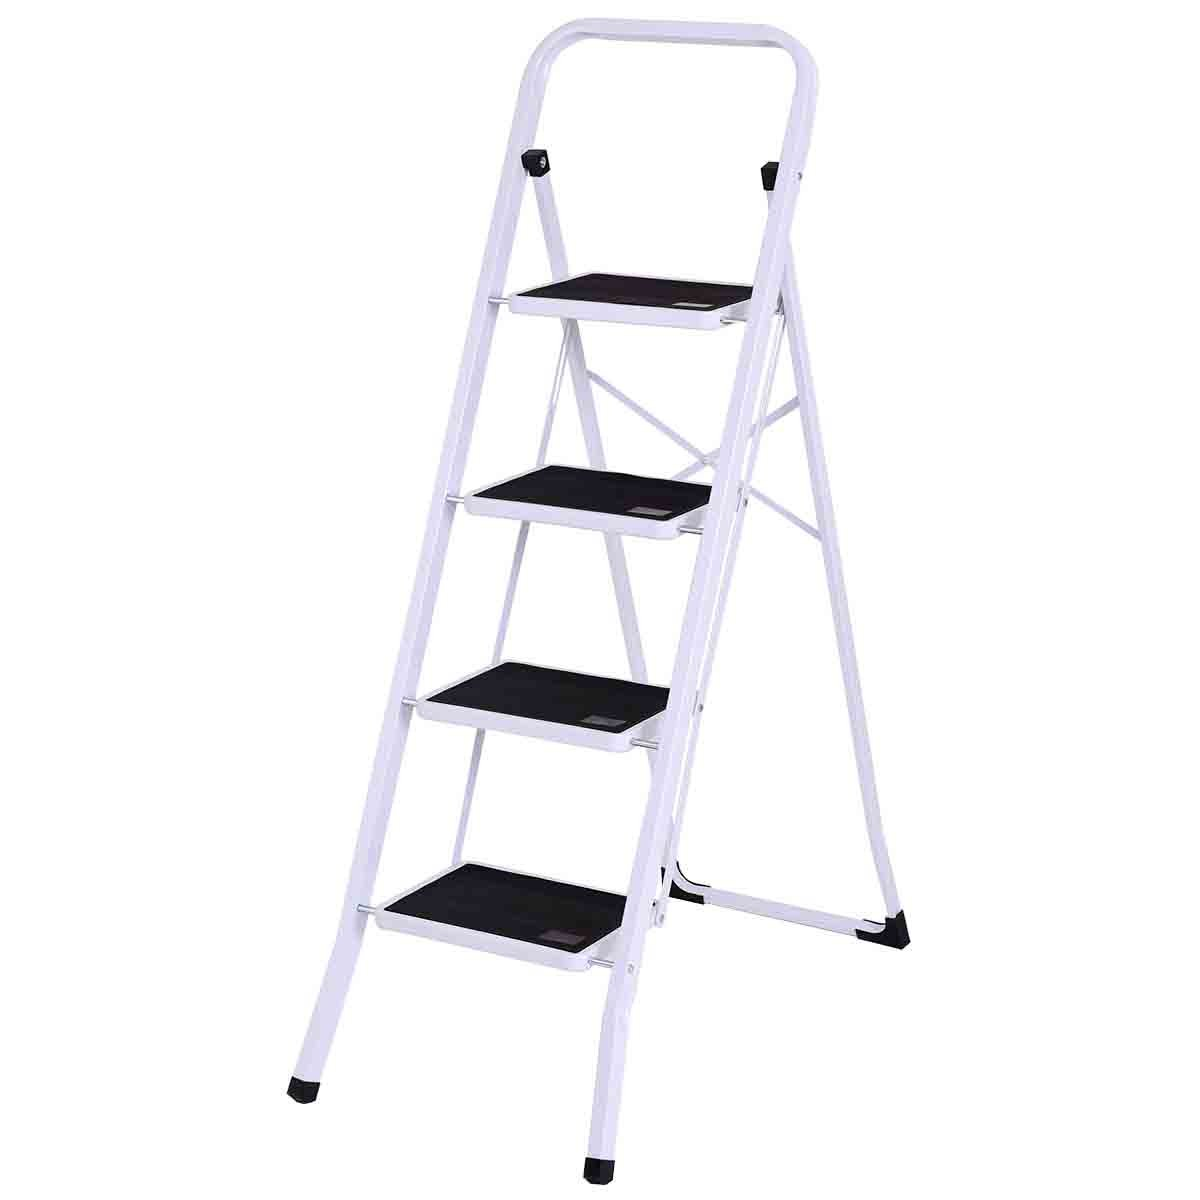 Safeplus Folding Step Stool Aluminum Double Sided Step Ladder with 330 lbs Capacity for Warehouse Garden Kitchen Office (4 steps)